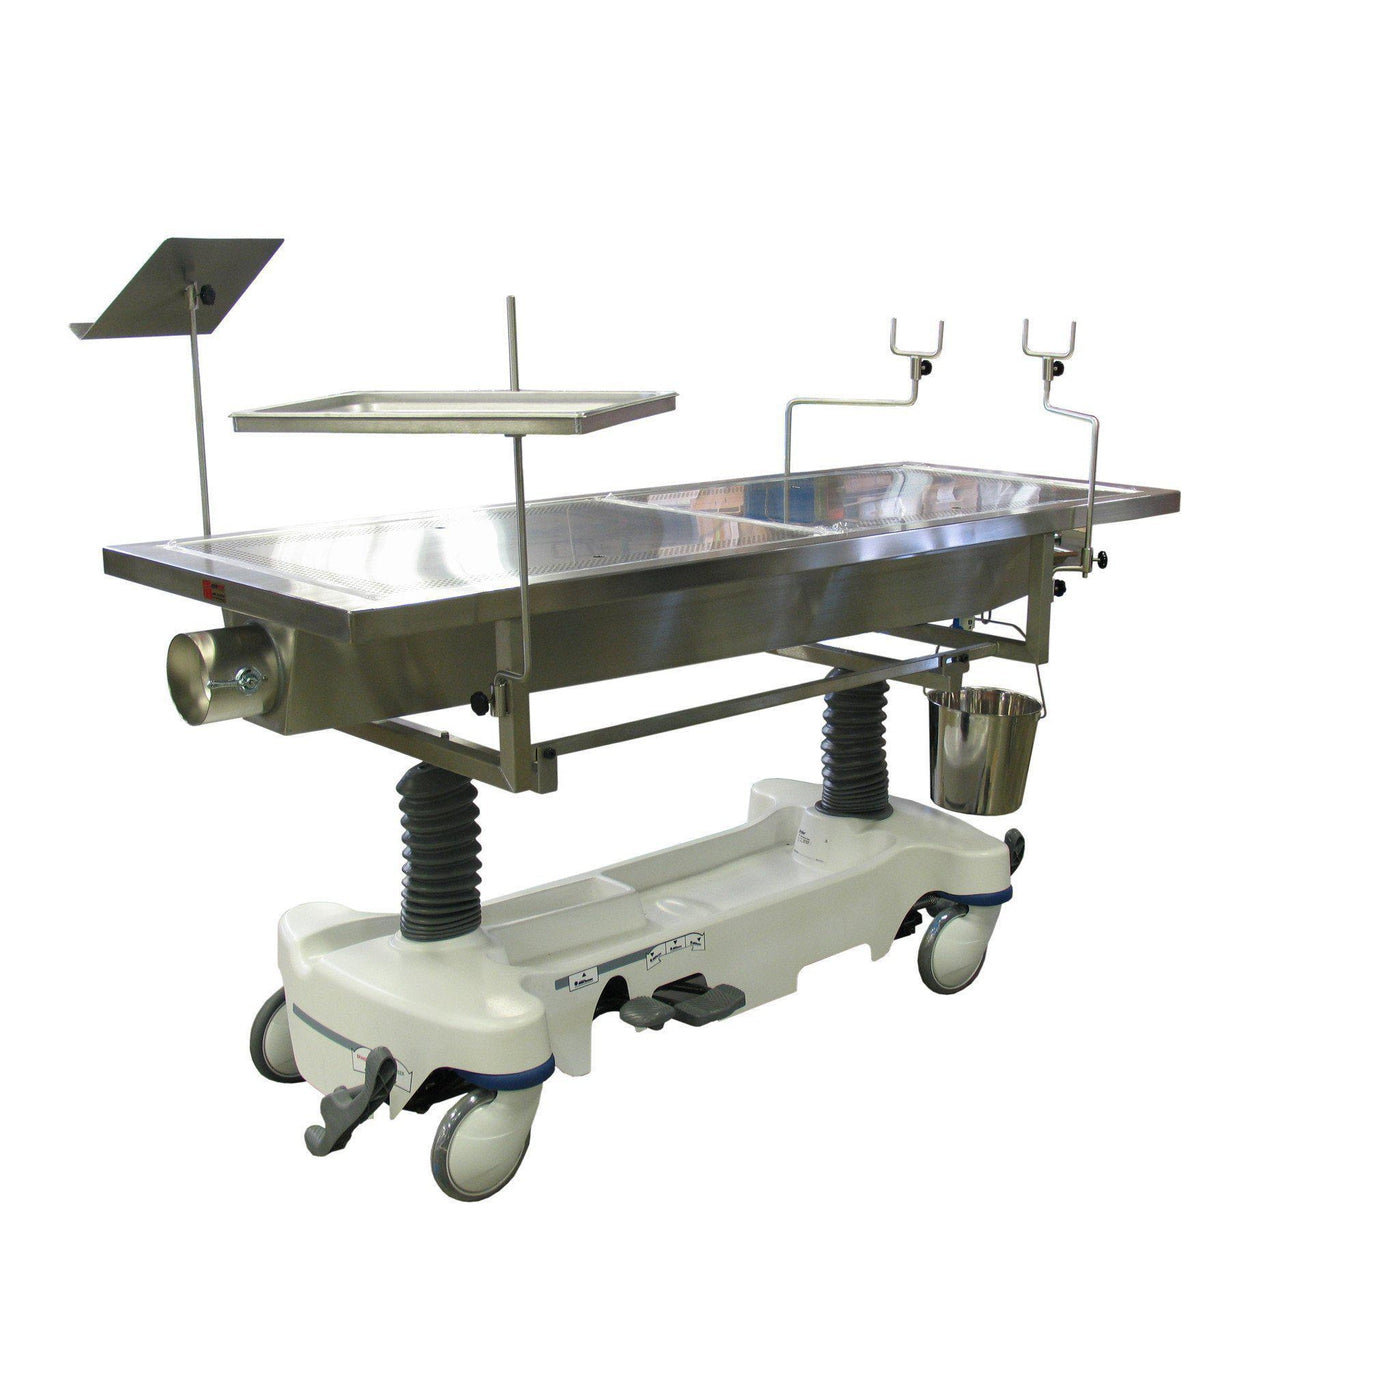 Elevated Dissection Table with Exhaust Chamber-Anatomy Dissection Tables-Mortech Manufacturing Company Inc. Quality Stainless Steel Autopsy, Morgue, Funeral Home, Necropsy, Veterinary / Anatomy, Dissection Equipment and Accessories